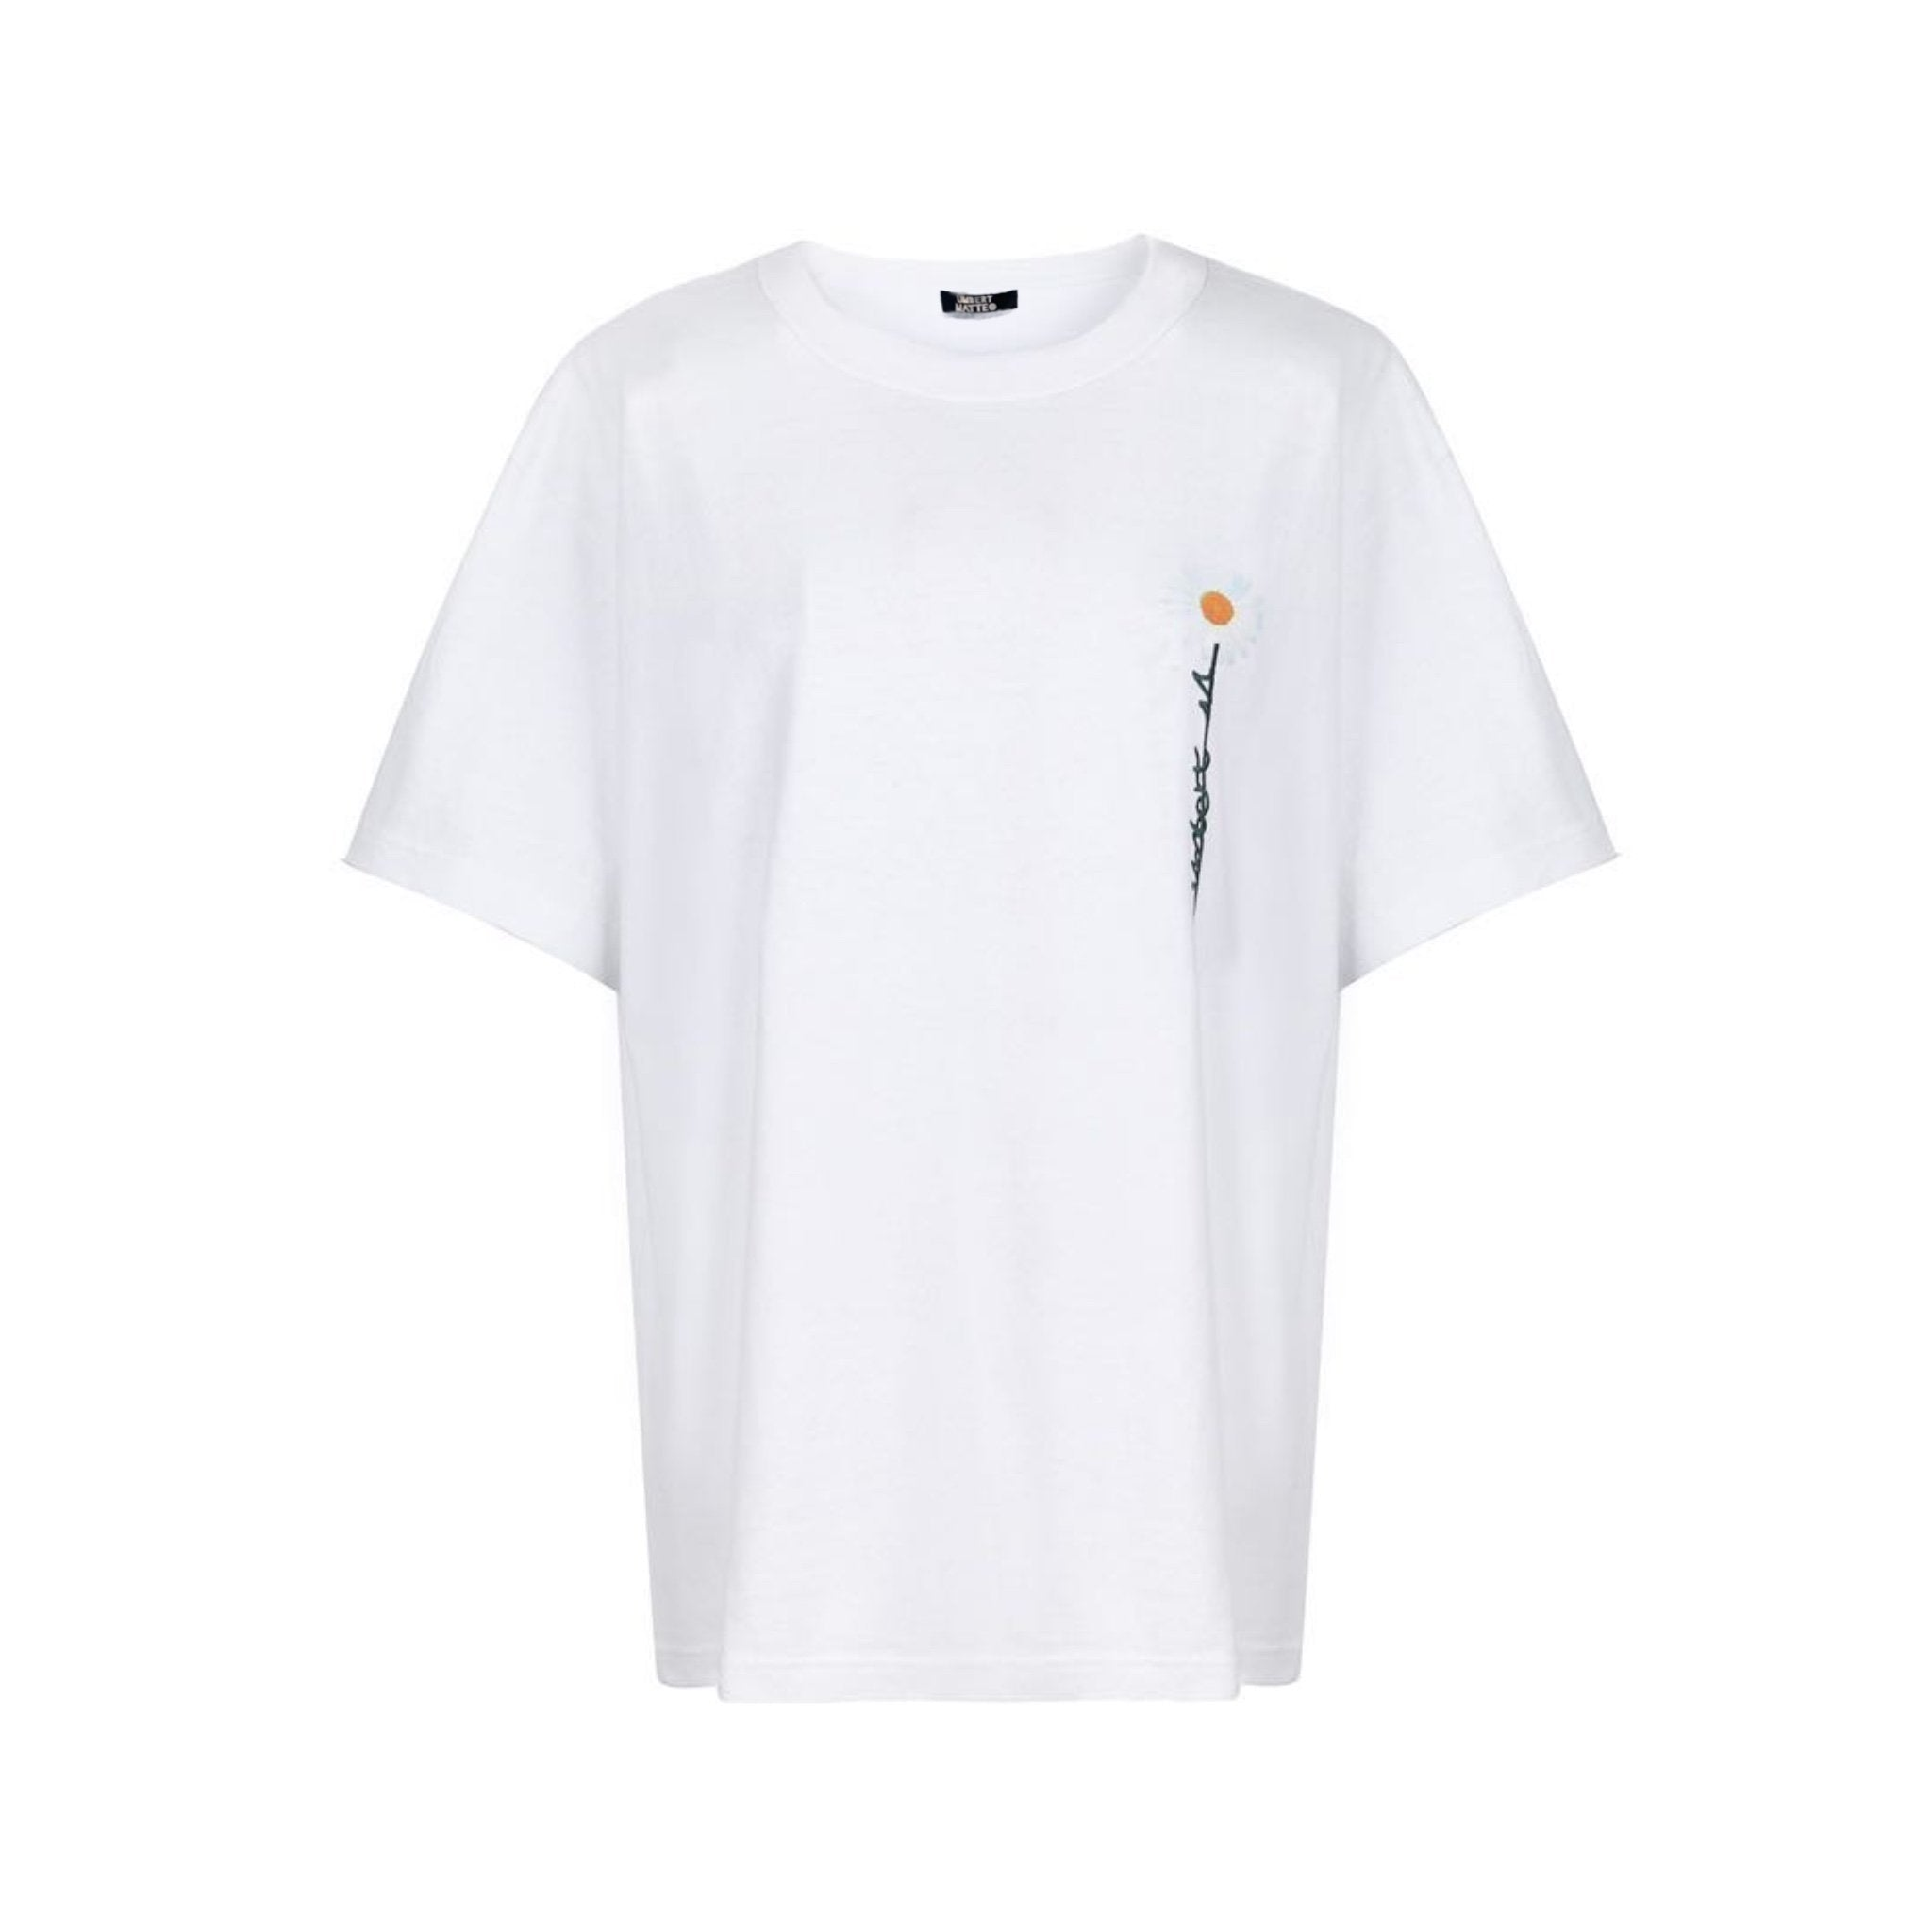 UMBERT MATTEO Daisy Tee White | MADA IN CHINA